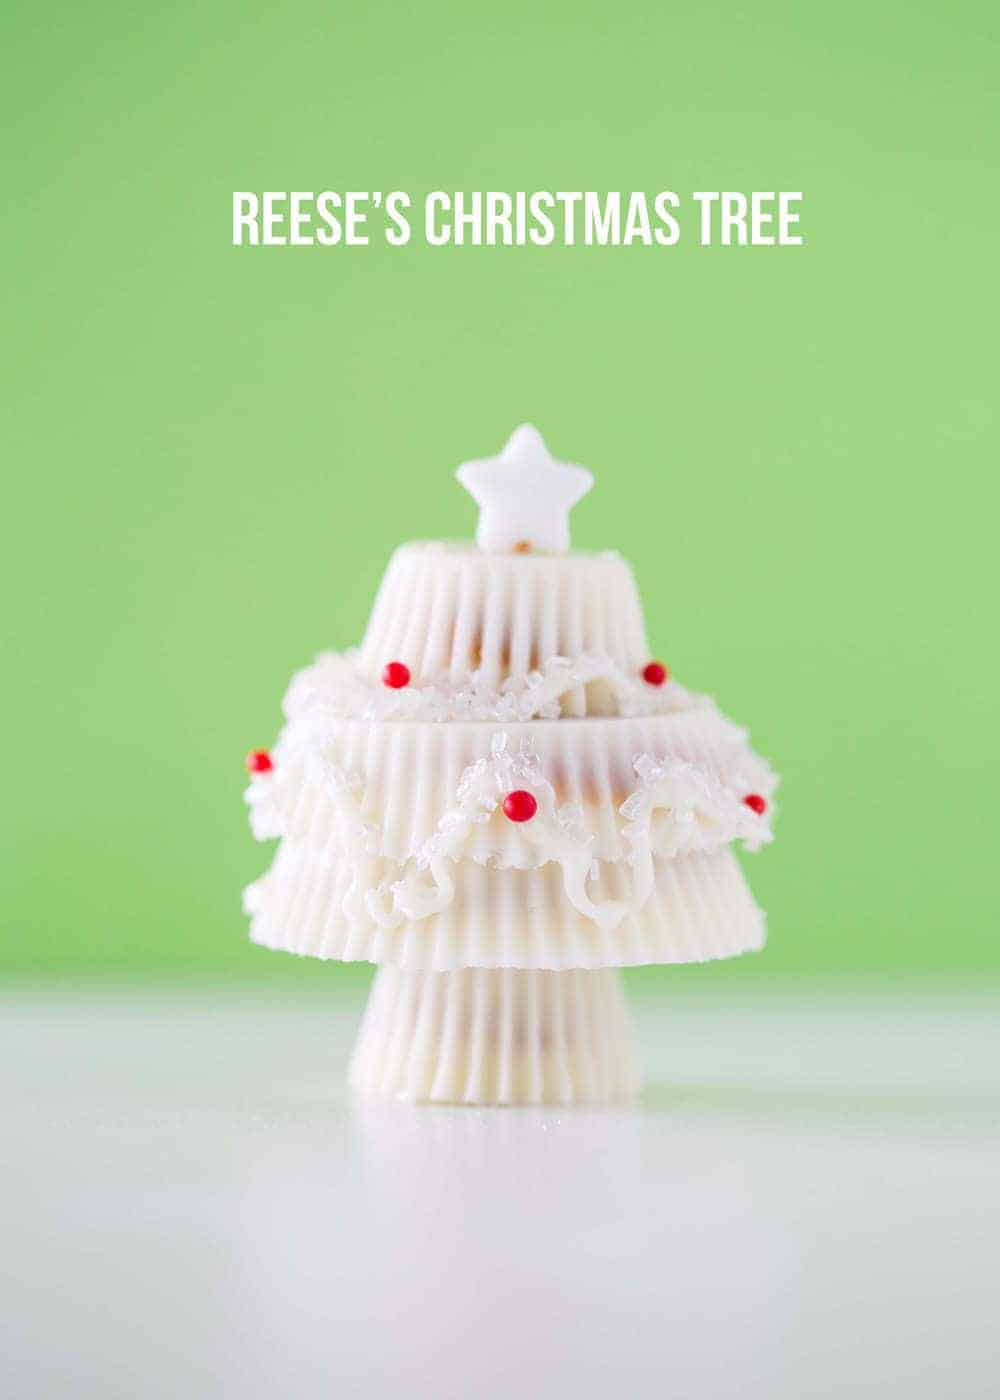 White Chocolate Reese's Christmas Trees - I Heart Nap Time